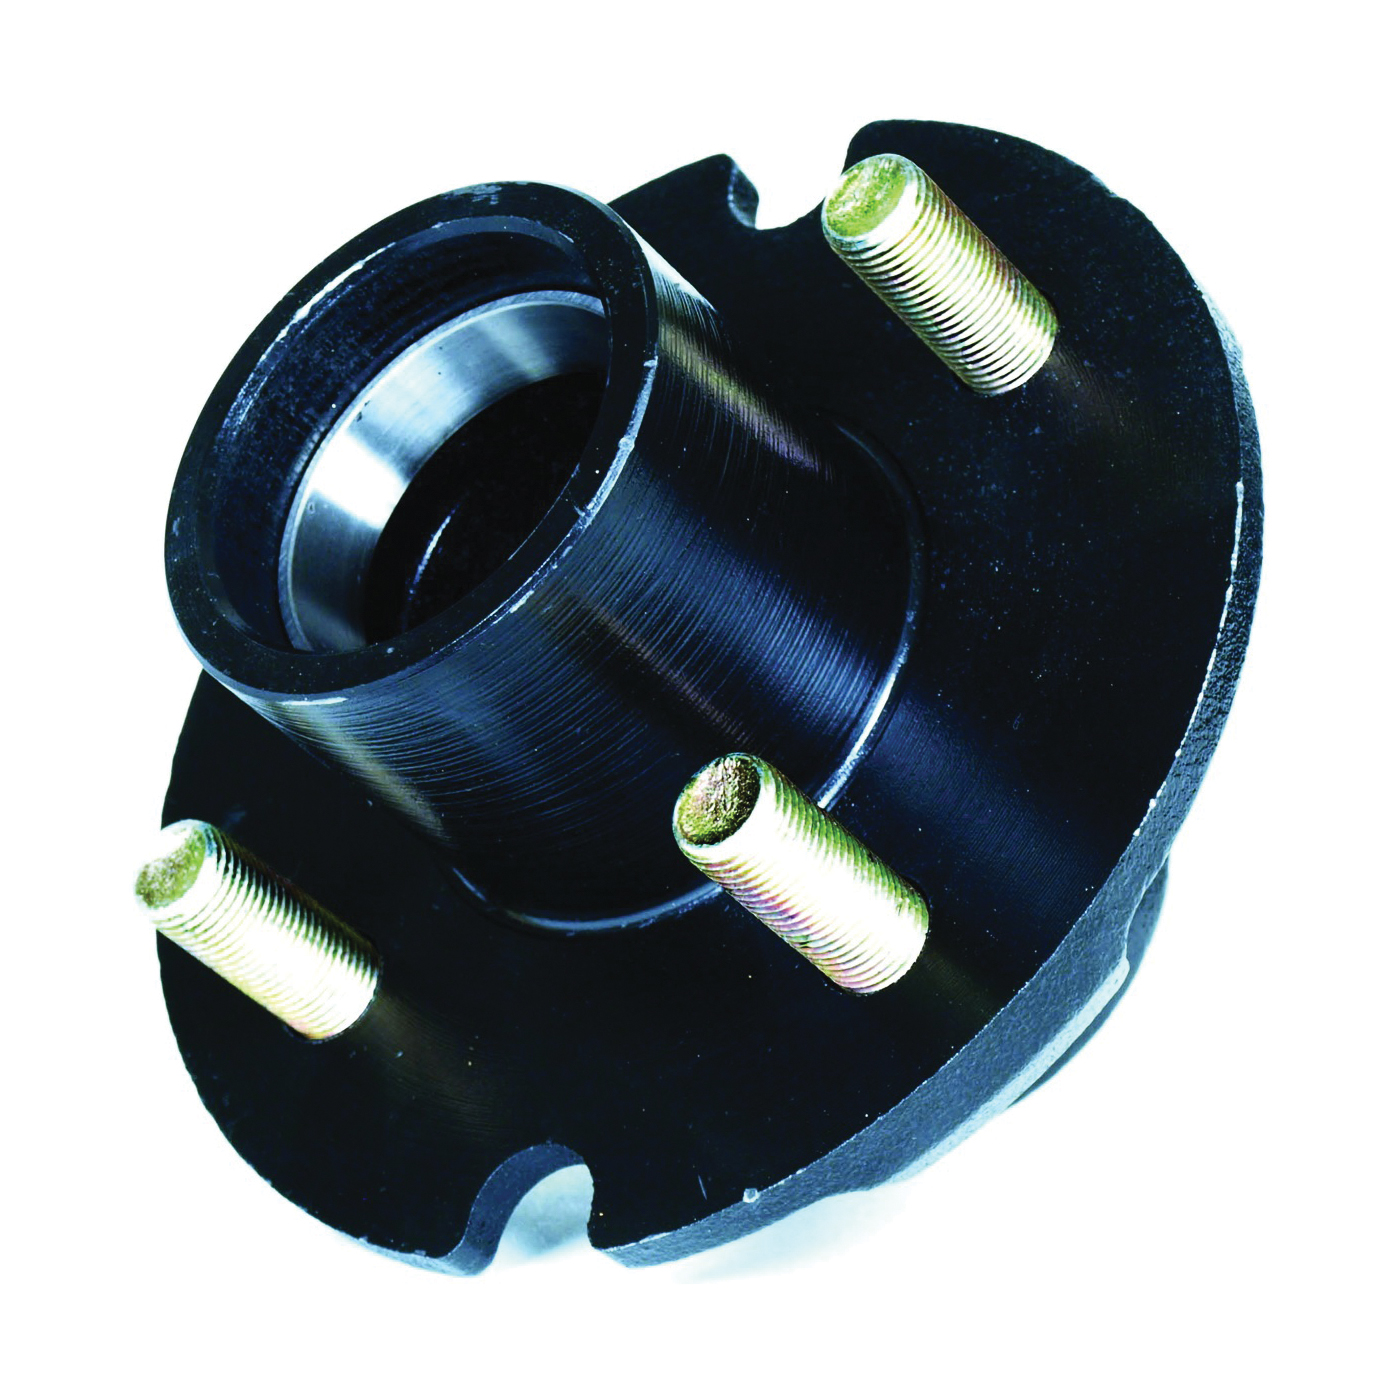 Picture of MARTIN WHEEL H4-C-PB-B Trailer Hub, 1250 lb Withstand, 4 -Bolt, 4 x 4 in Dia Bolt Circle